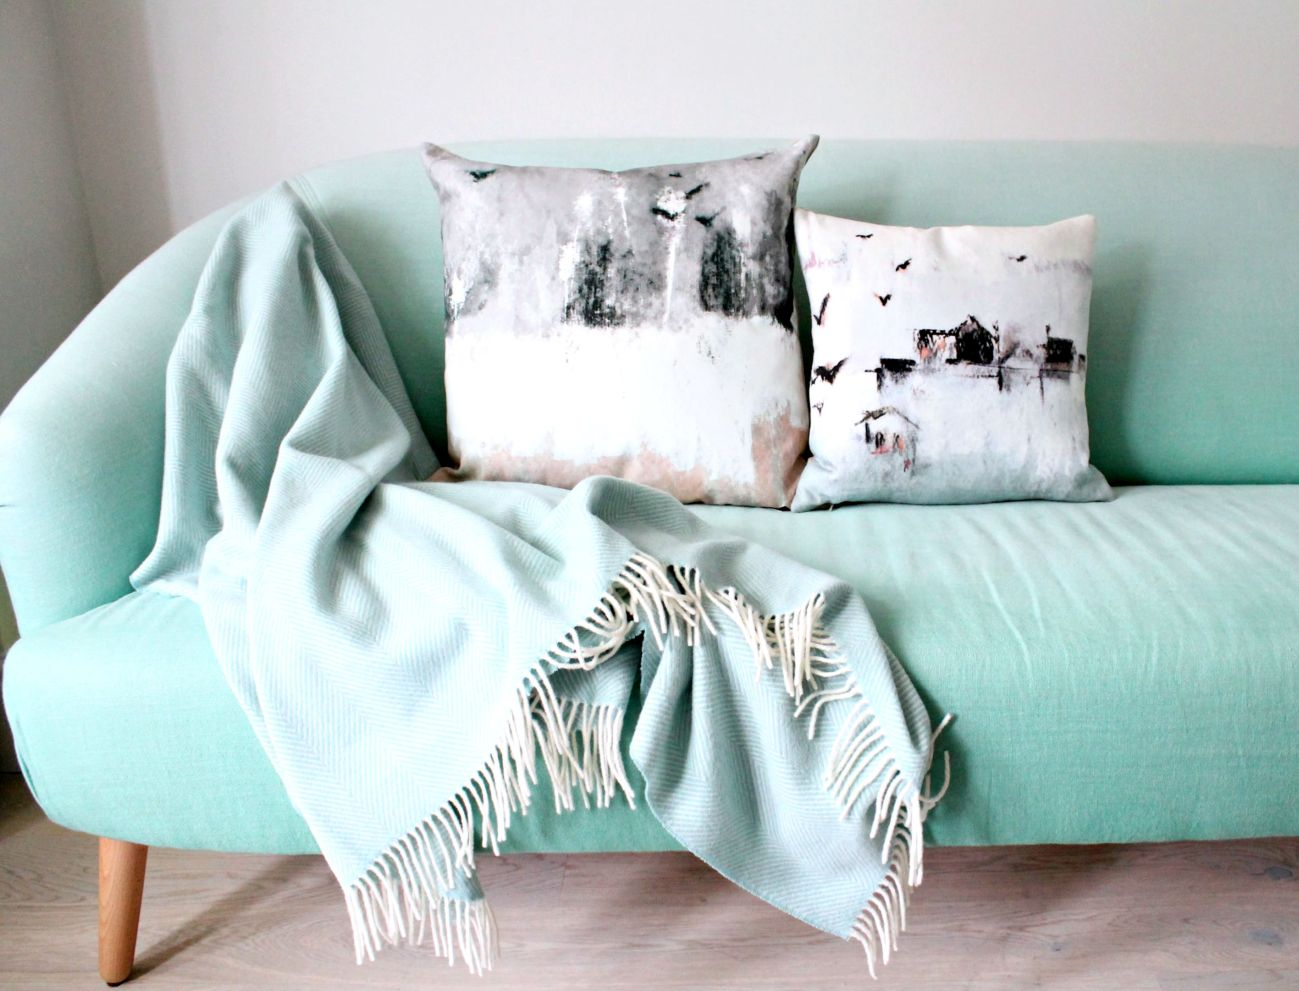 Mint Sweet Sofa design